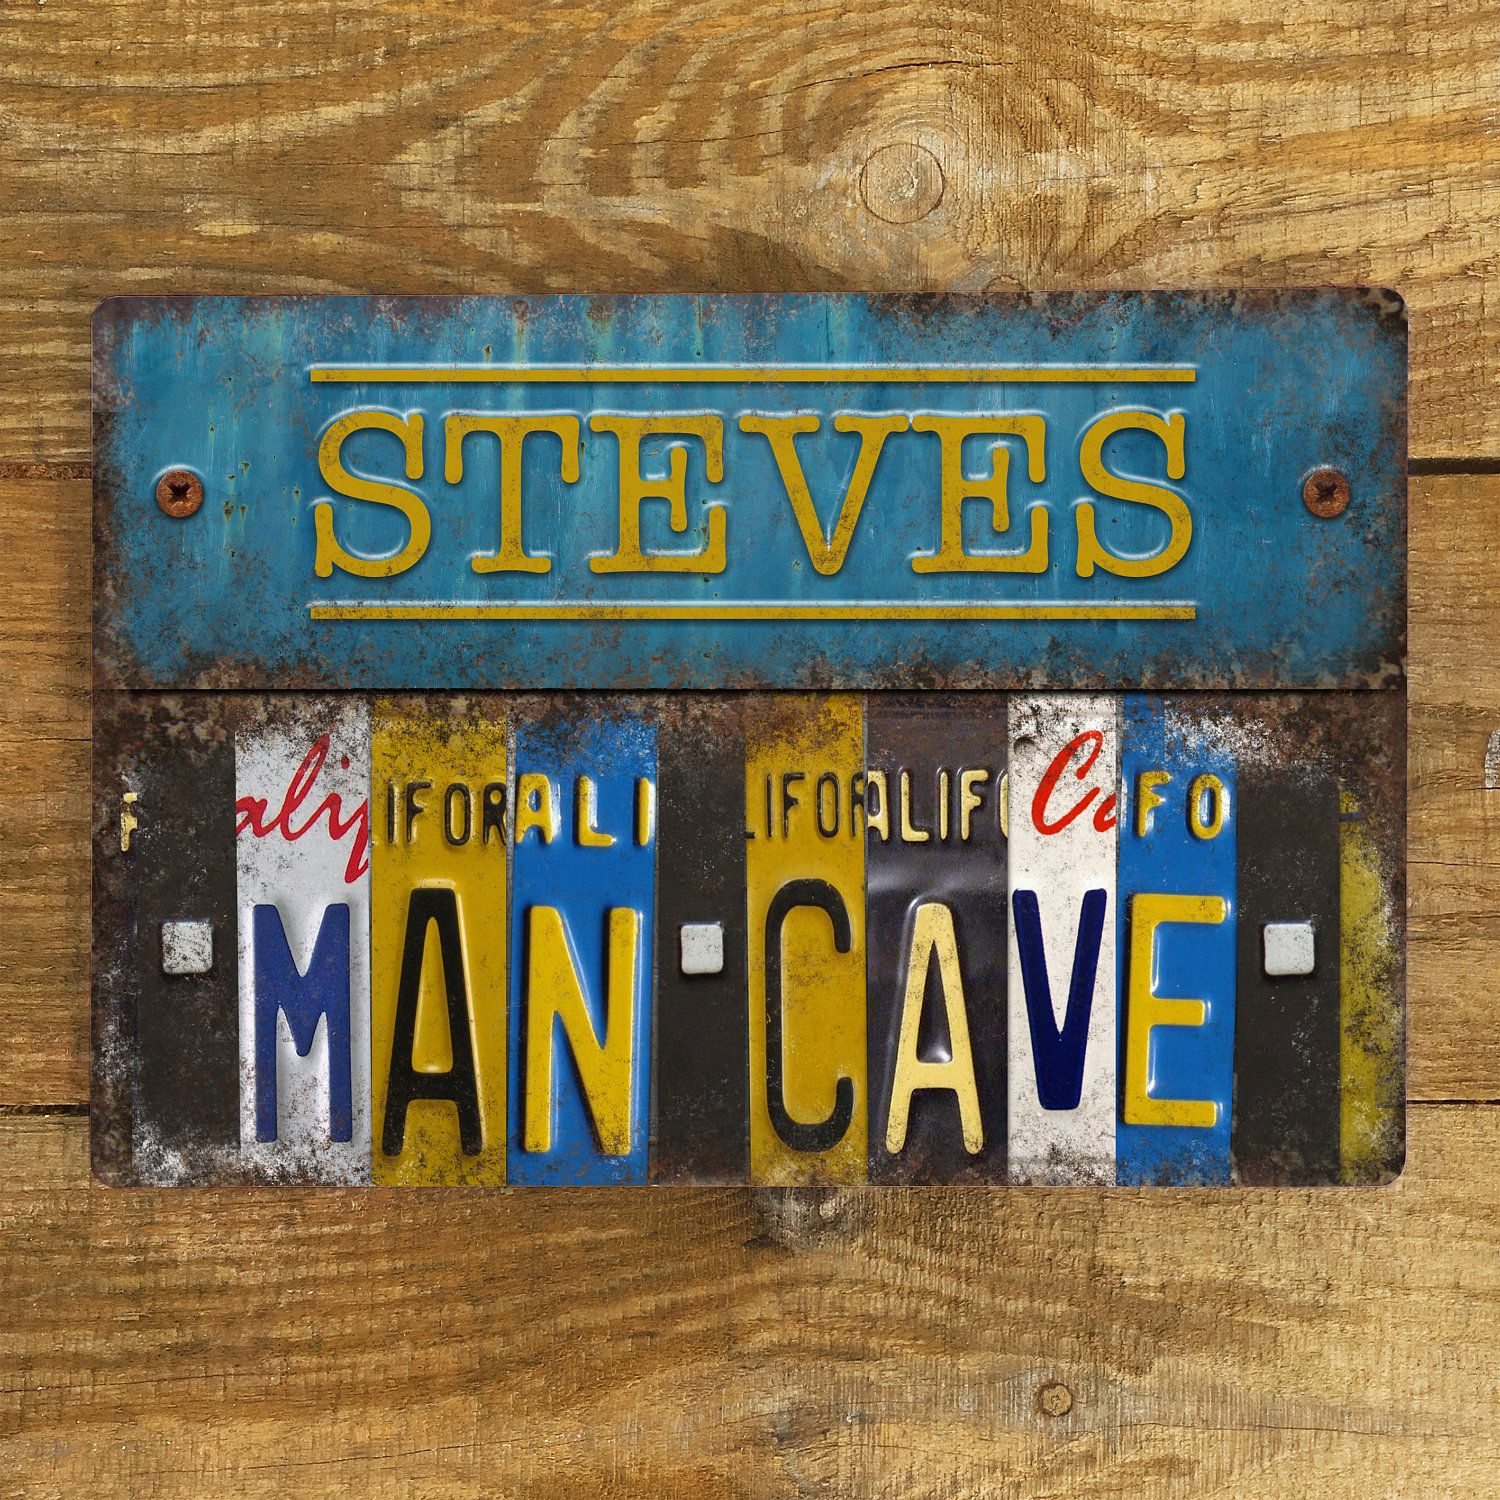 personalised metal sign man cave vintage metal wall sign plaque rh pinterest com